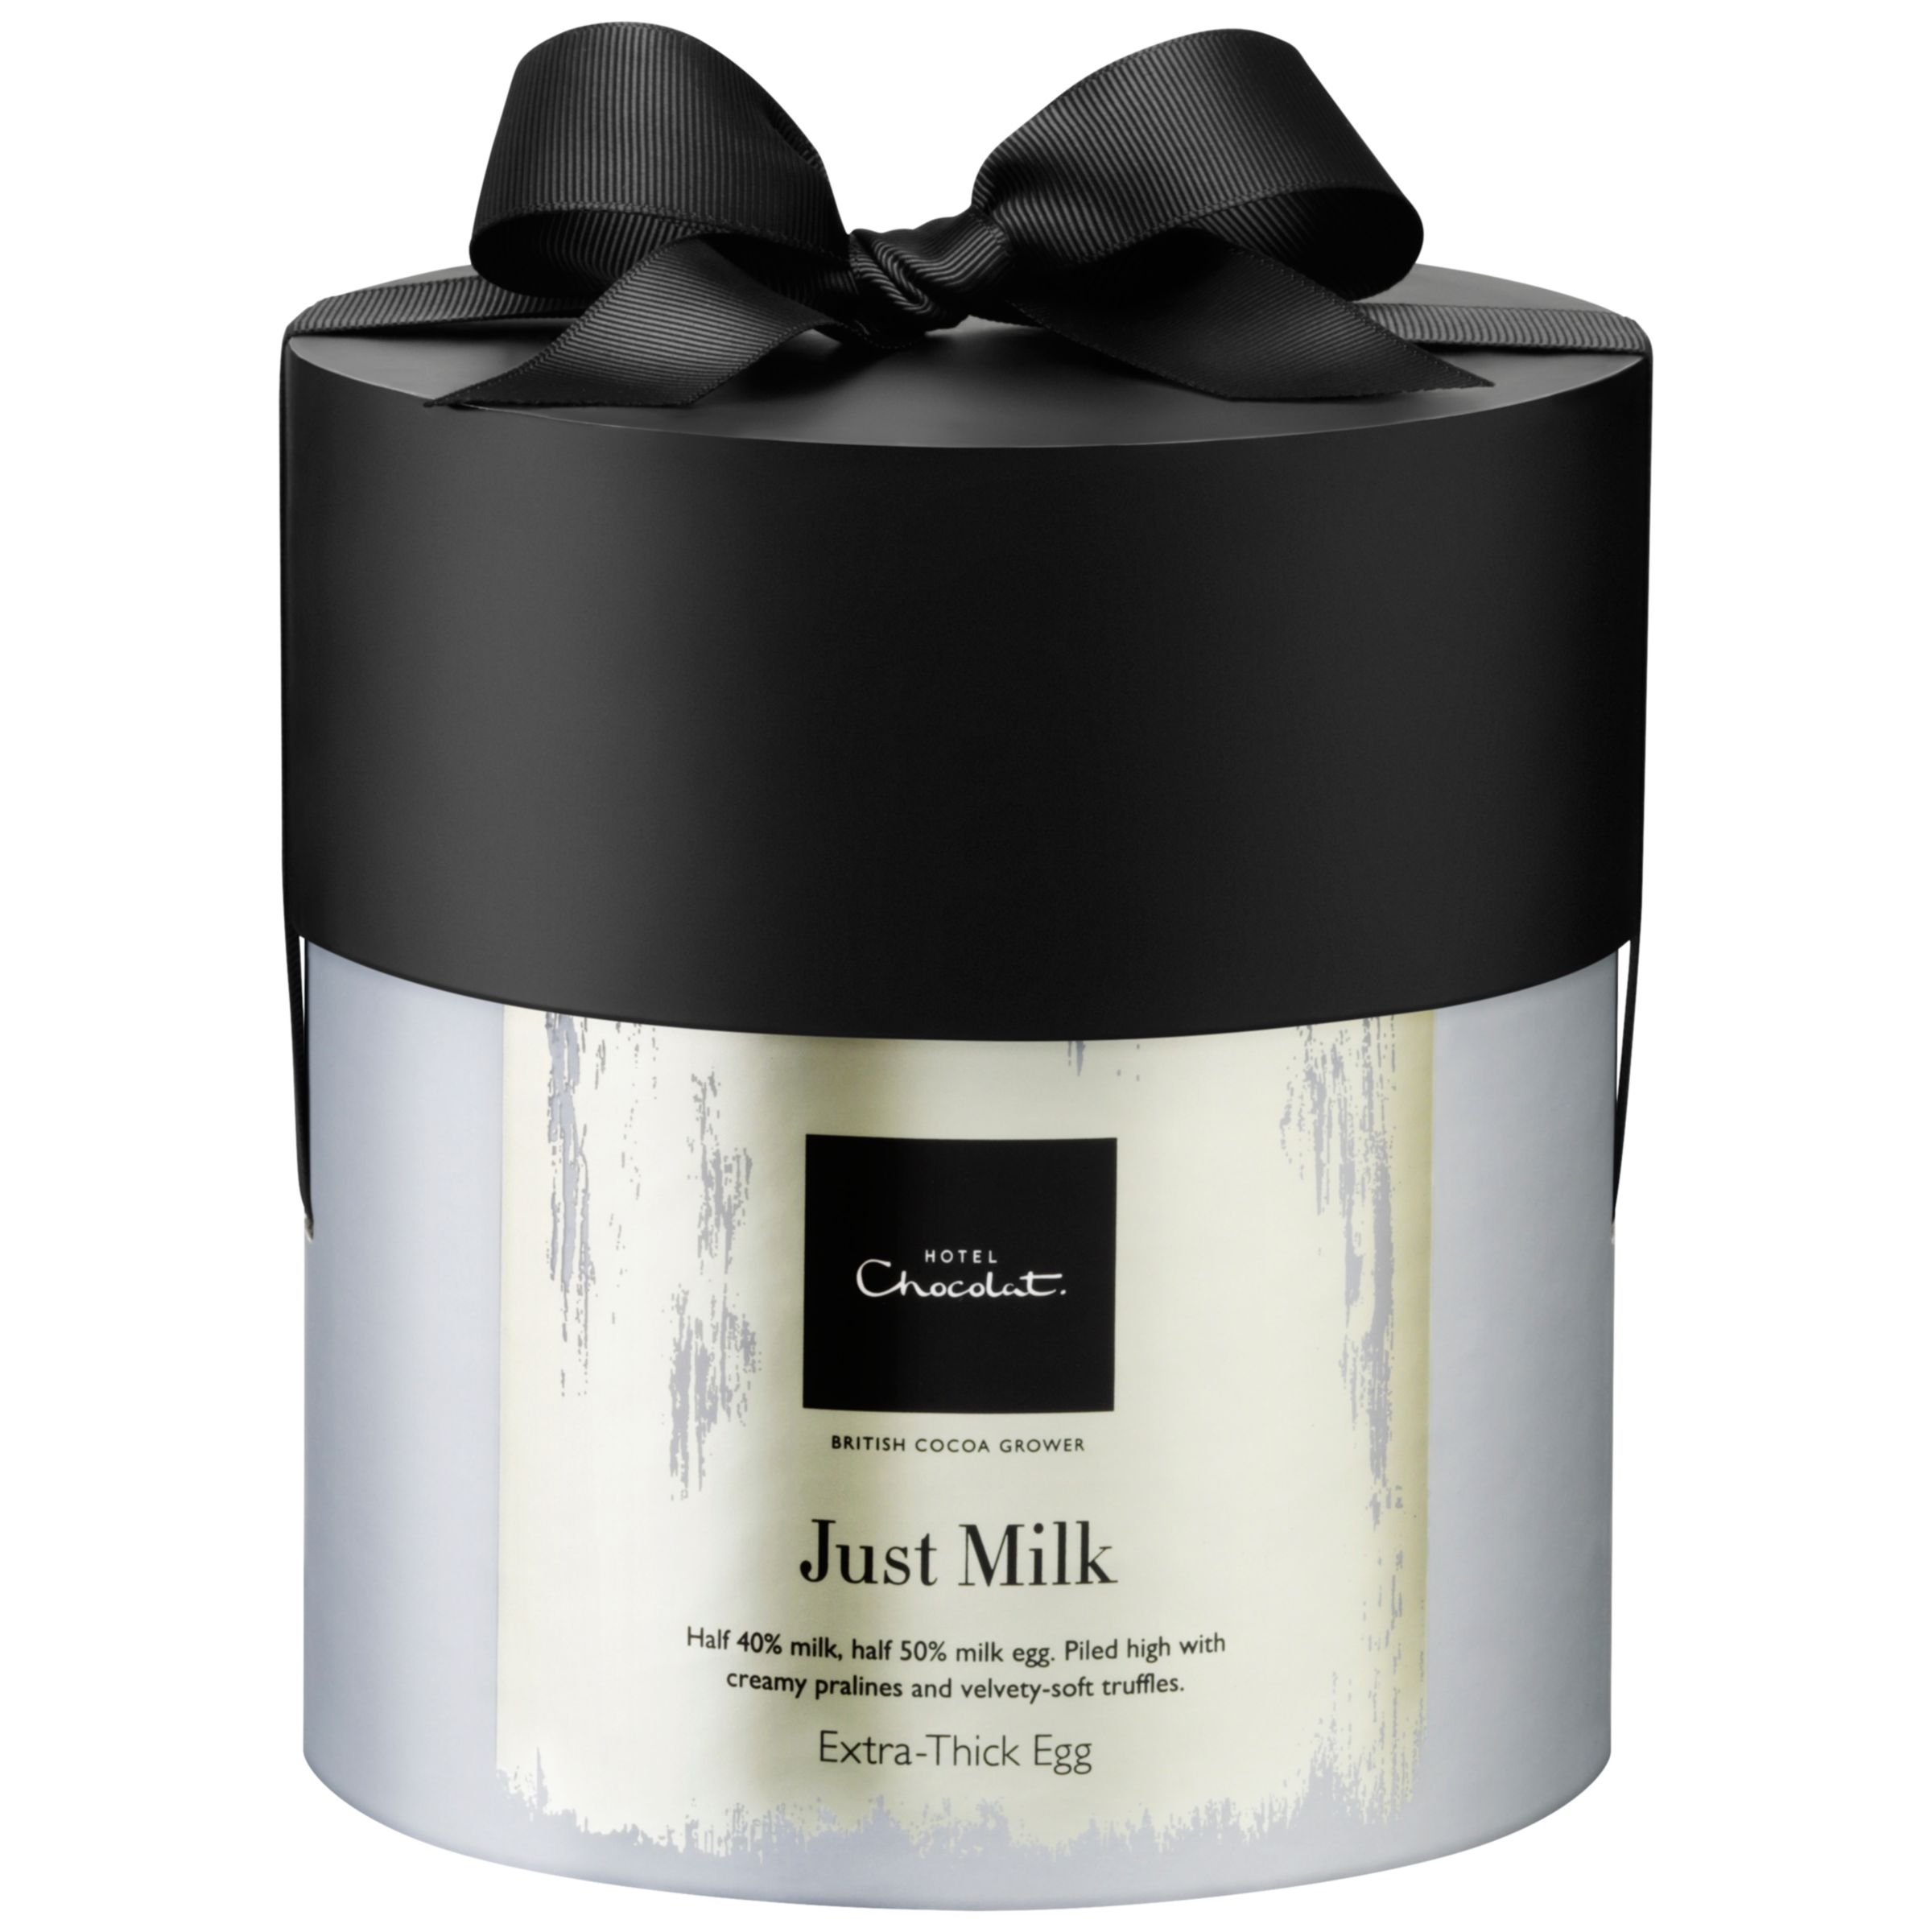 Hotel Chocolat Hotel Chocolat 'Just Milk' Extra-Thick Easter Egg, 390g